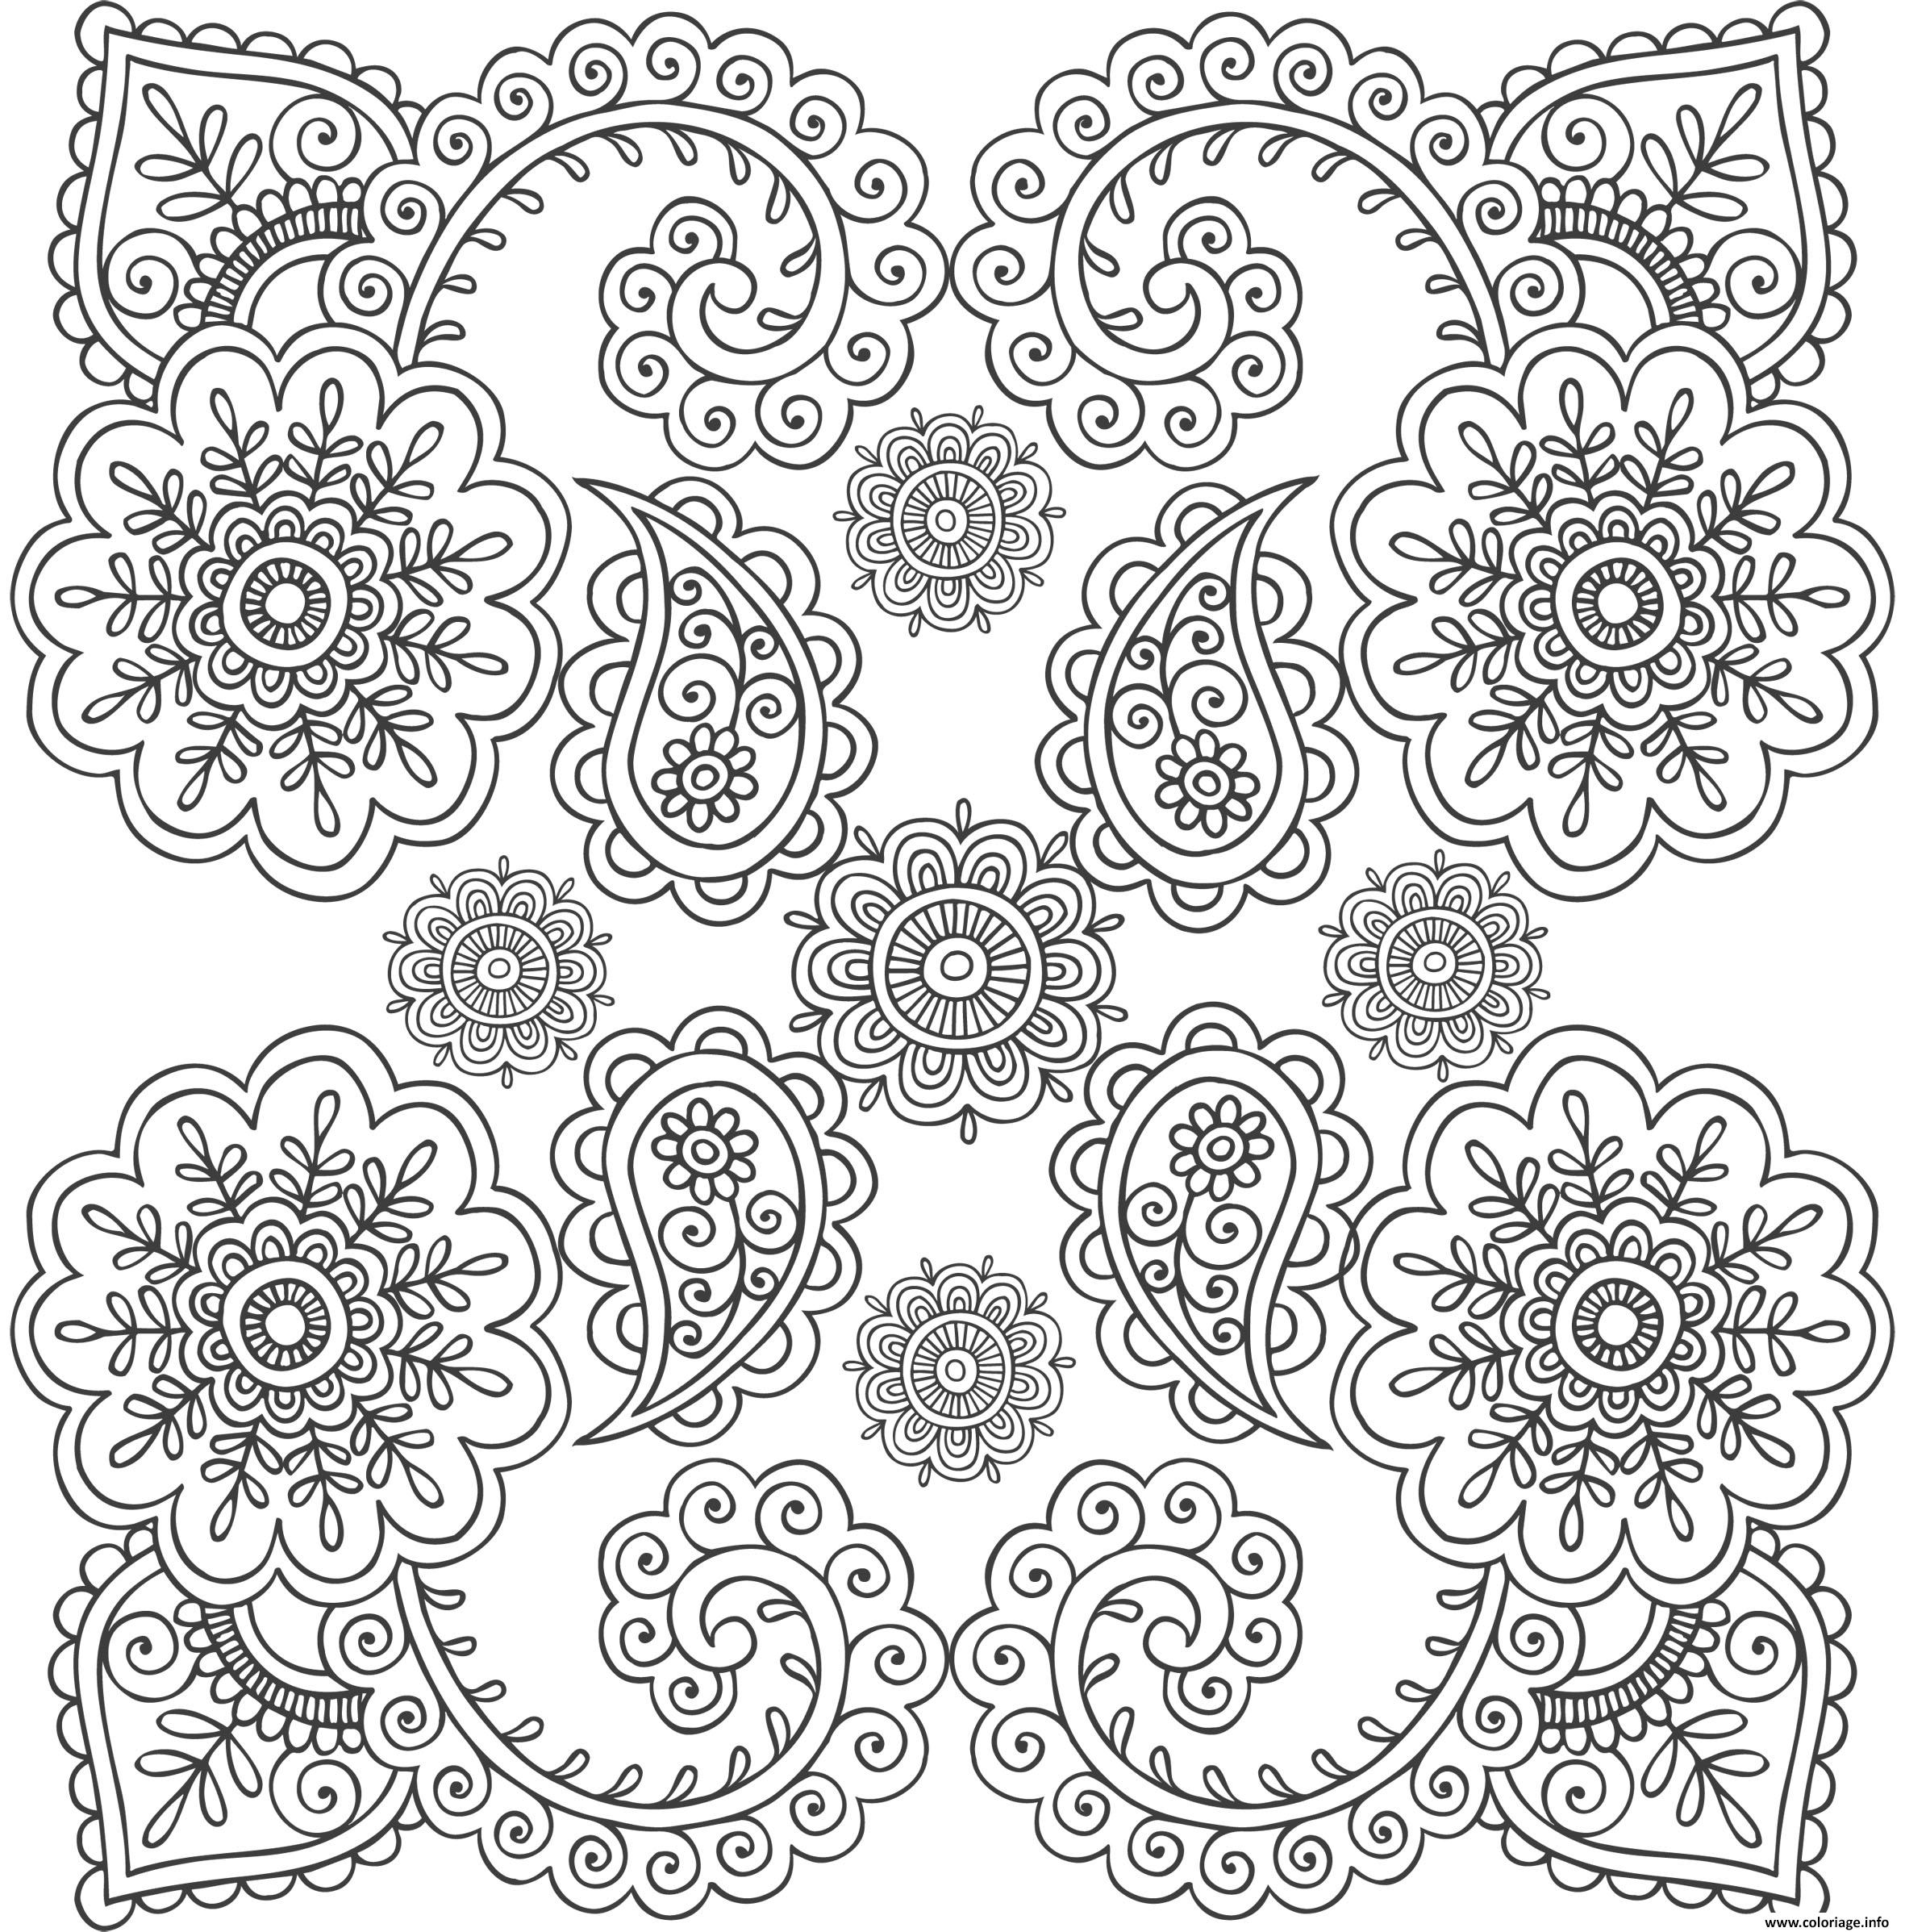 Coloriage xxl mandala anti stress dessin - Coloriage anti stress a imprimer ...